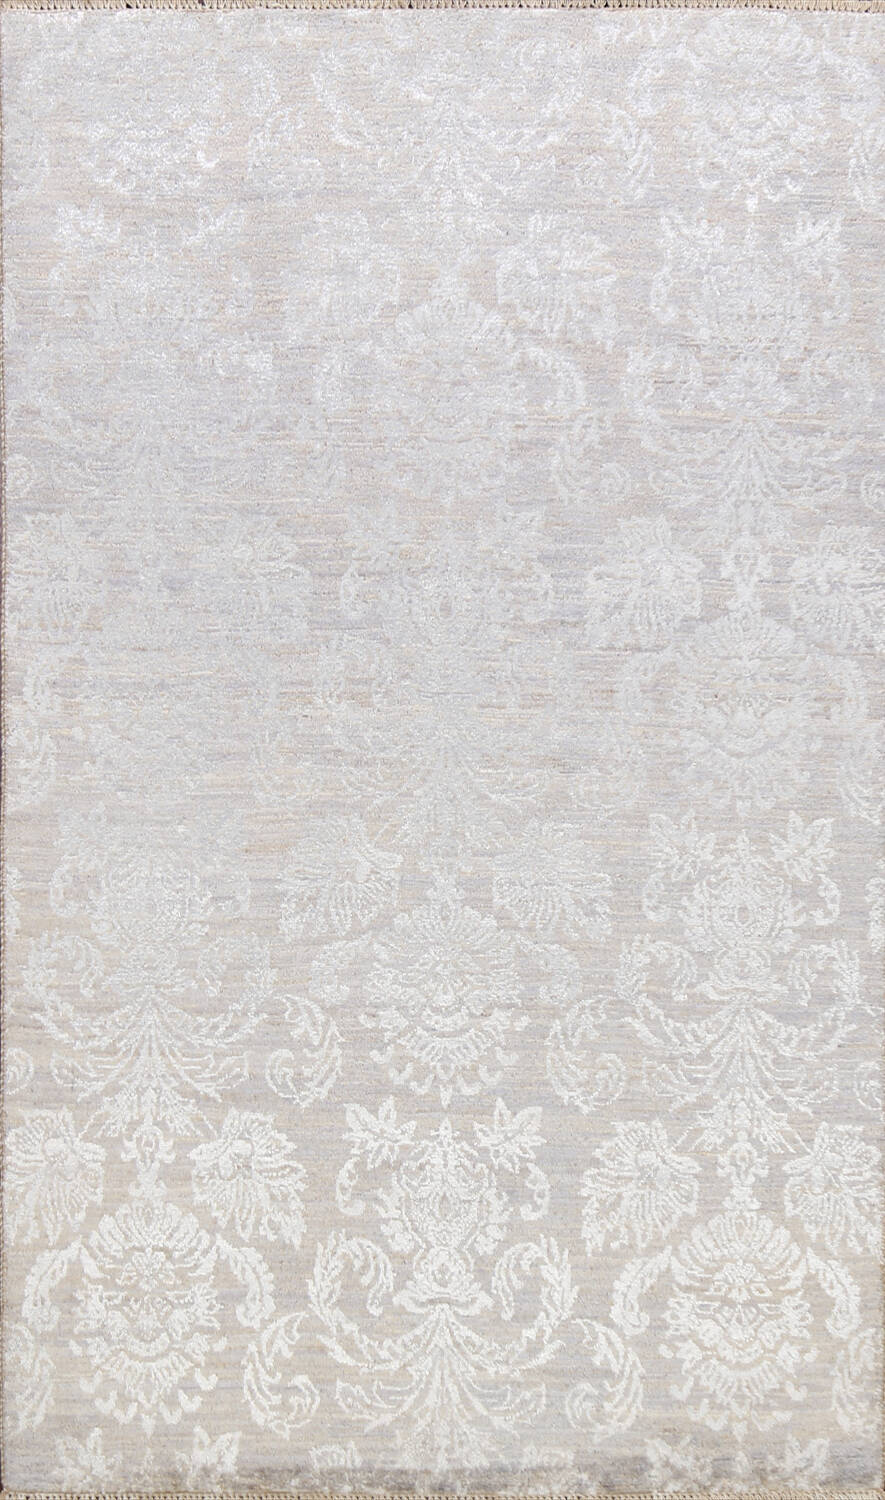 Vegetable Dye All-Over Abstract Oriental Area Rug 4x6 image 1